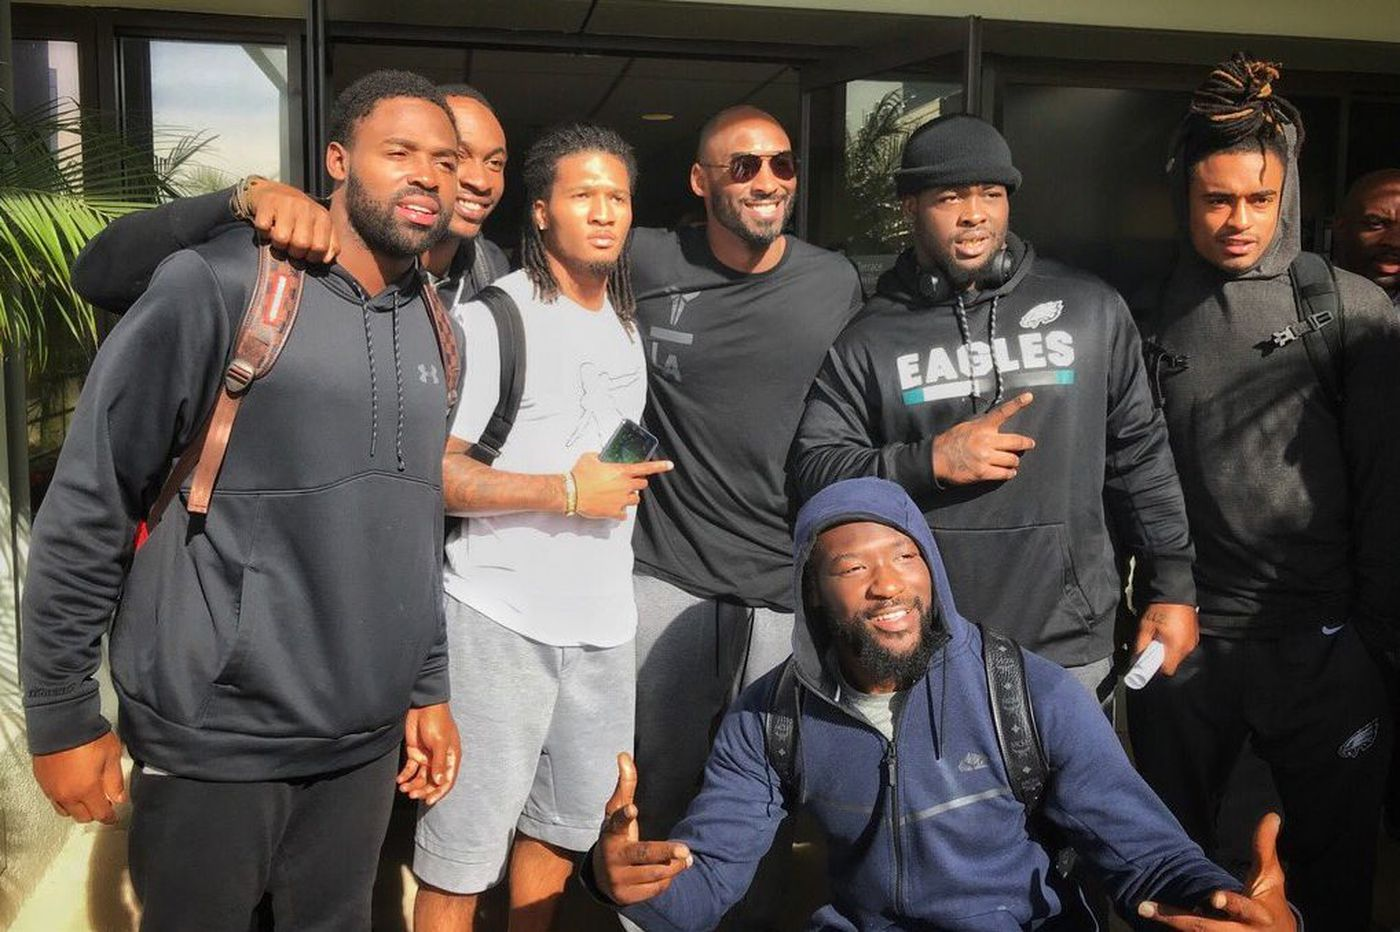 Eagles enthralled by visit from Kobe Bryant